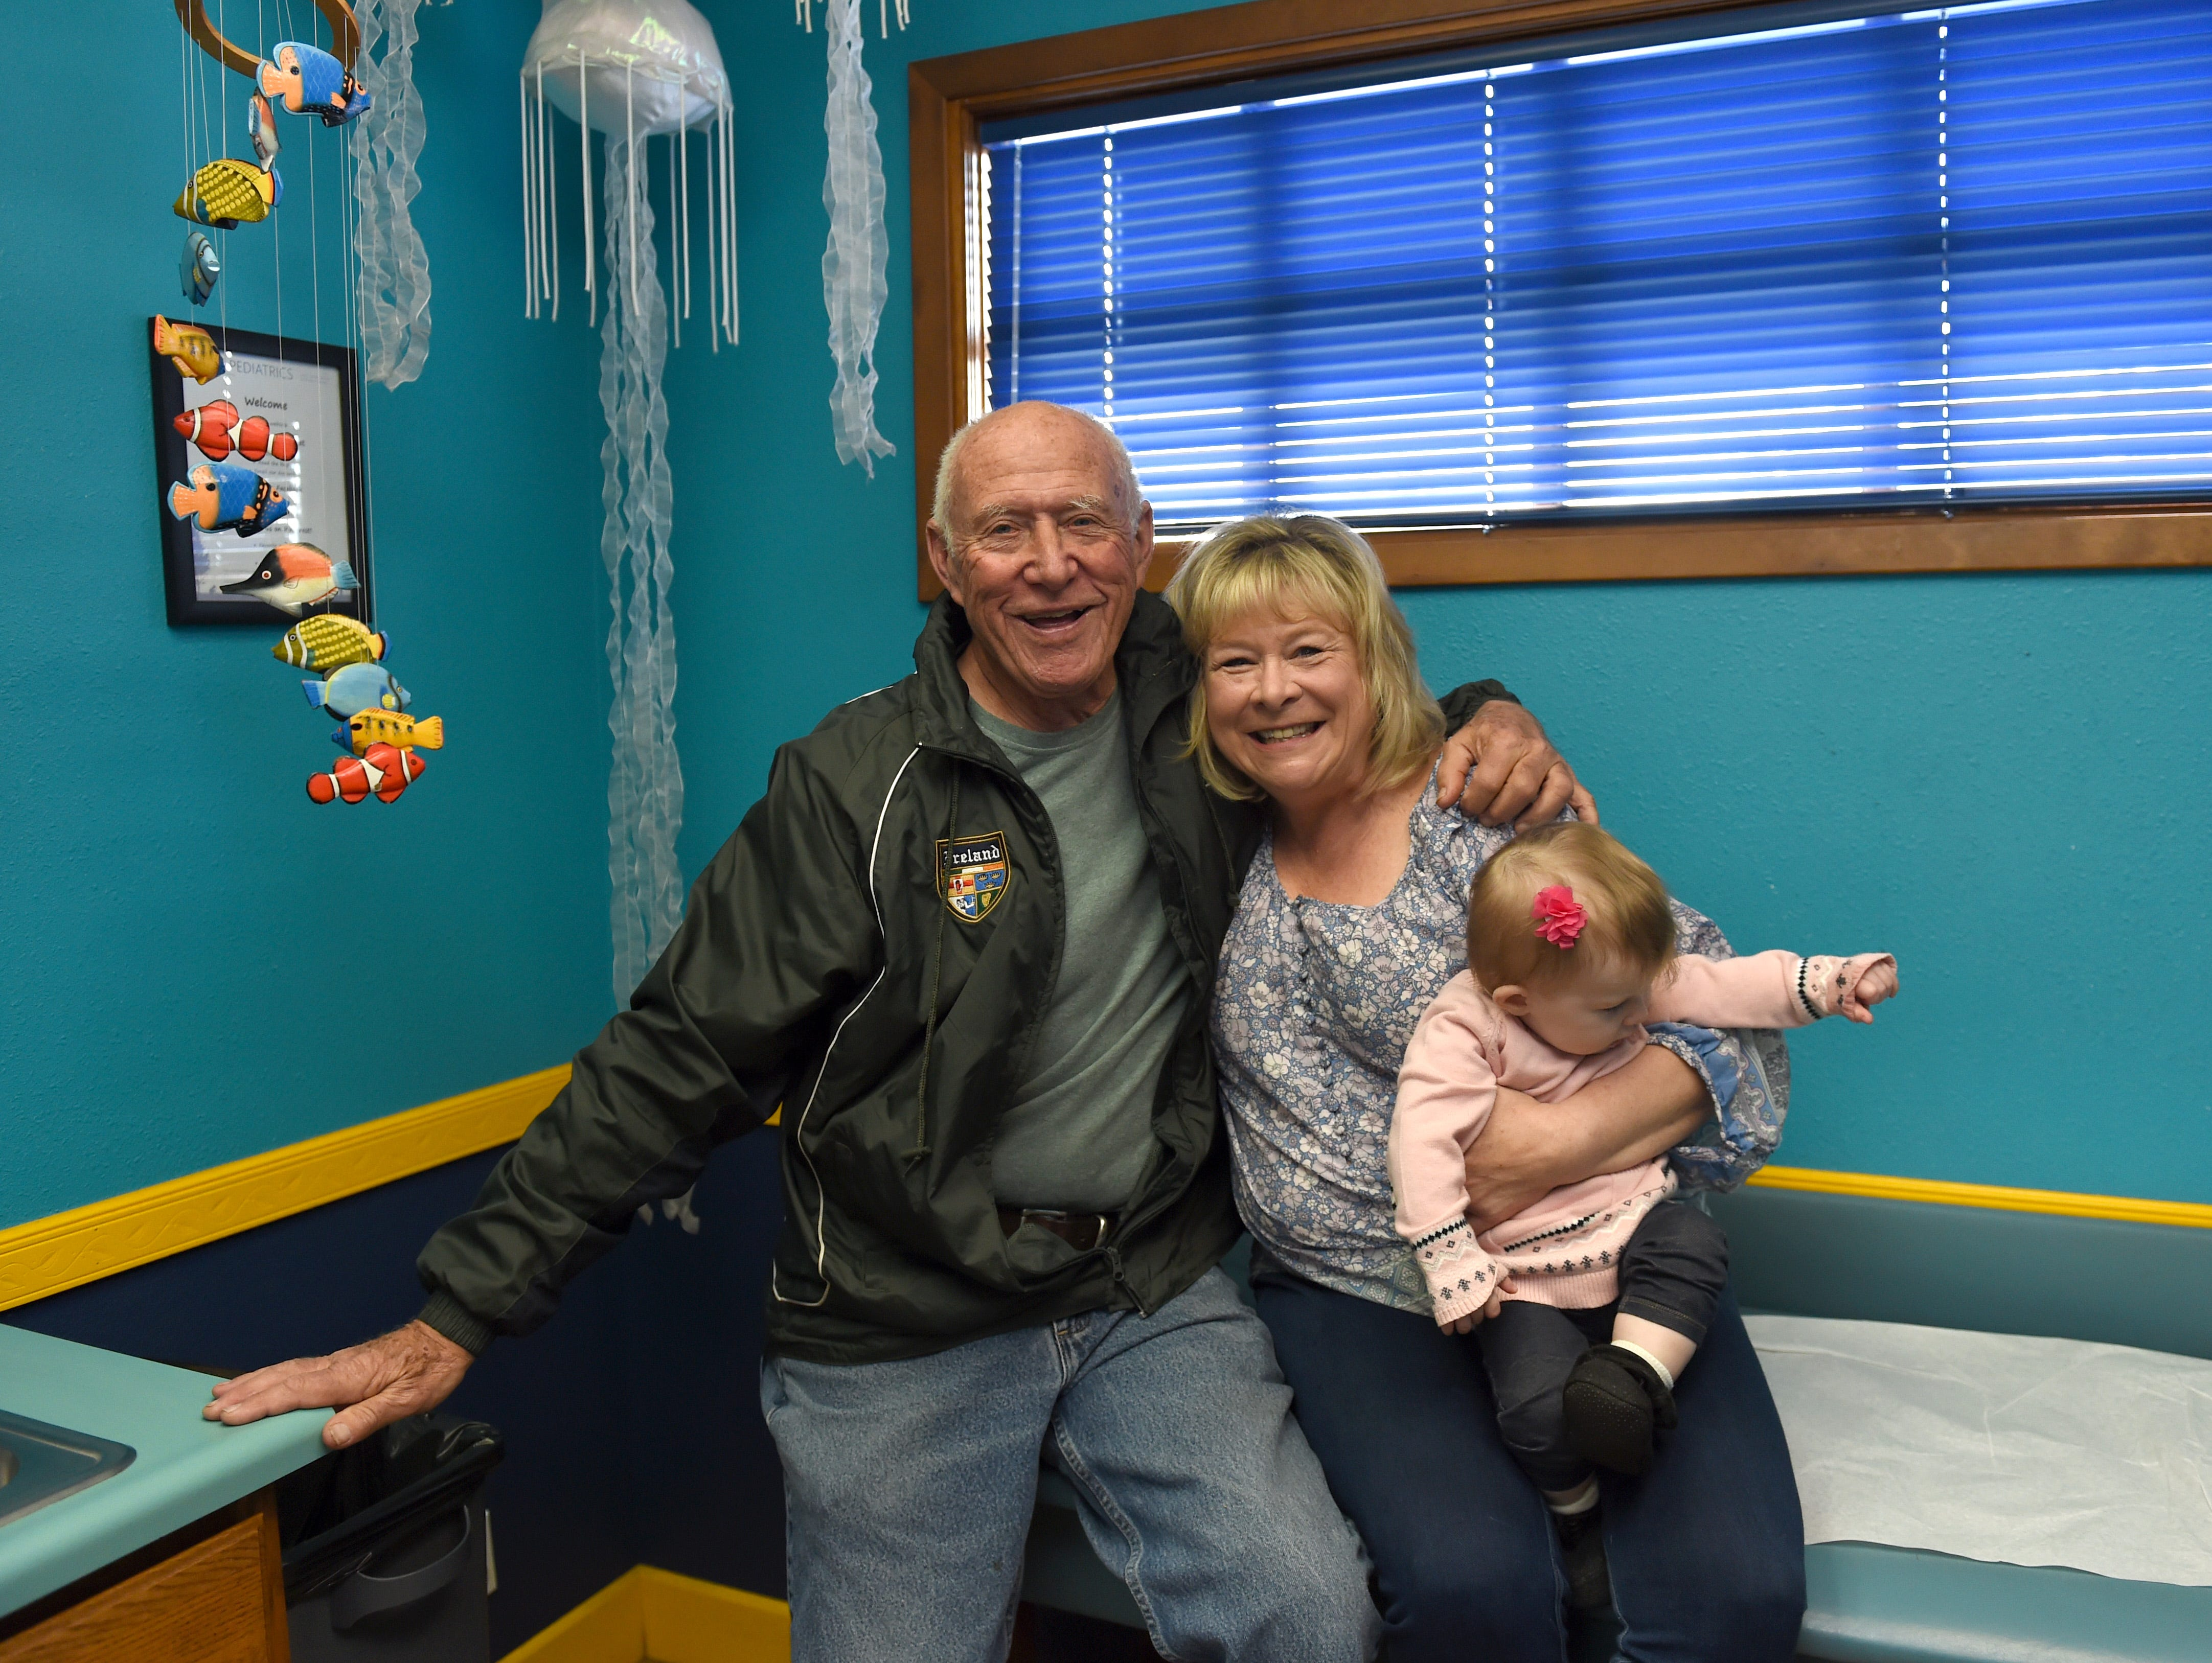 Dr. Patrick Colletti poses for a photo with his long-time nurse Jane Prescott, who is holding her granddaughter Blair Gutierrez, 10 months, at the Aspen Pediatrics. Dr. Colletti will be retiring after 50 years of pediatric practice in Reno.